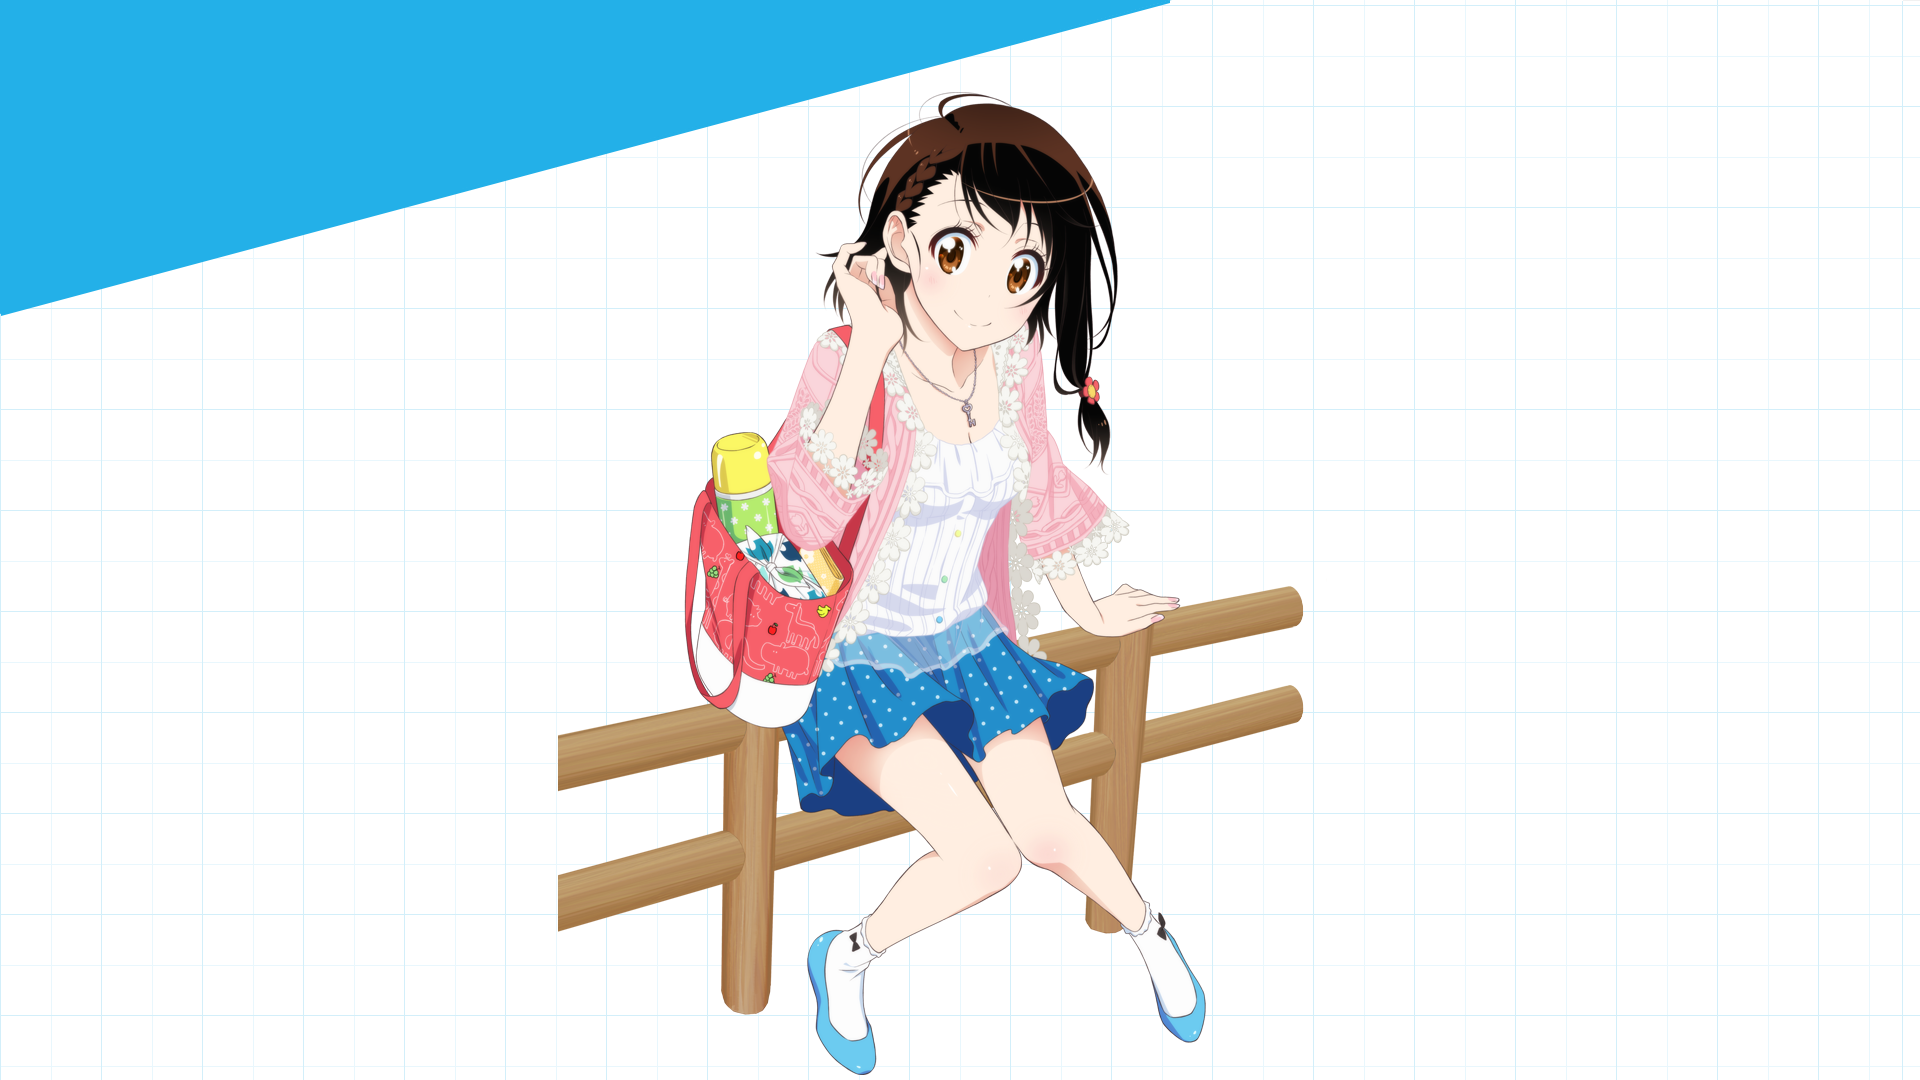 261 Kosaki Onodera Hd Wallpapers Backgrounds Wallpaper Abyss Nisekoi Nisekoi Wallpaper Anime